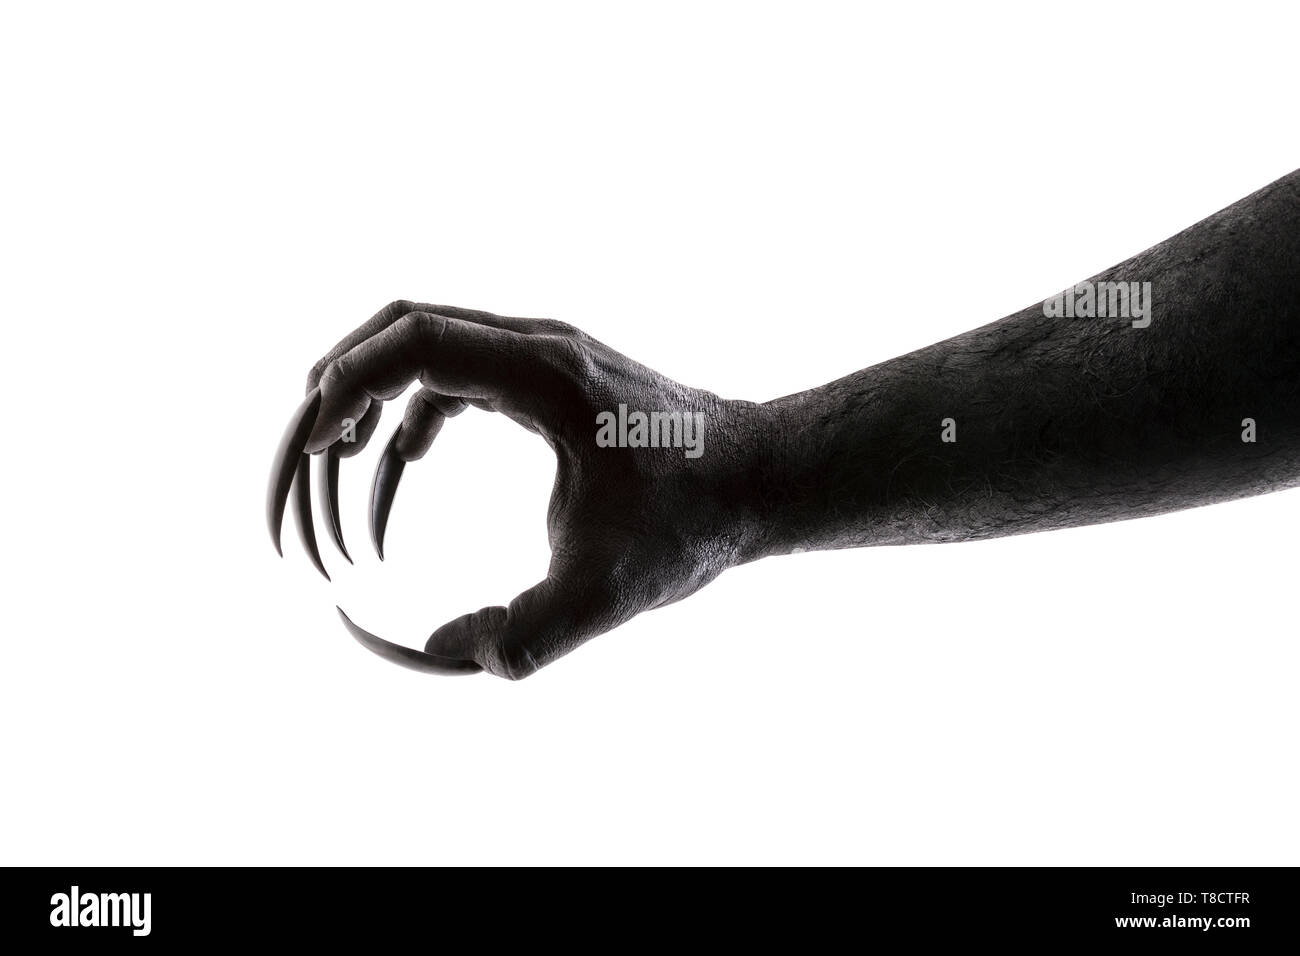 Creepy monster claw isolated on white background with clipping path - Stock Image